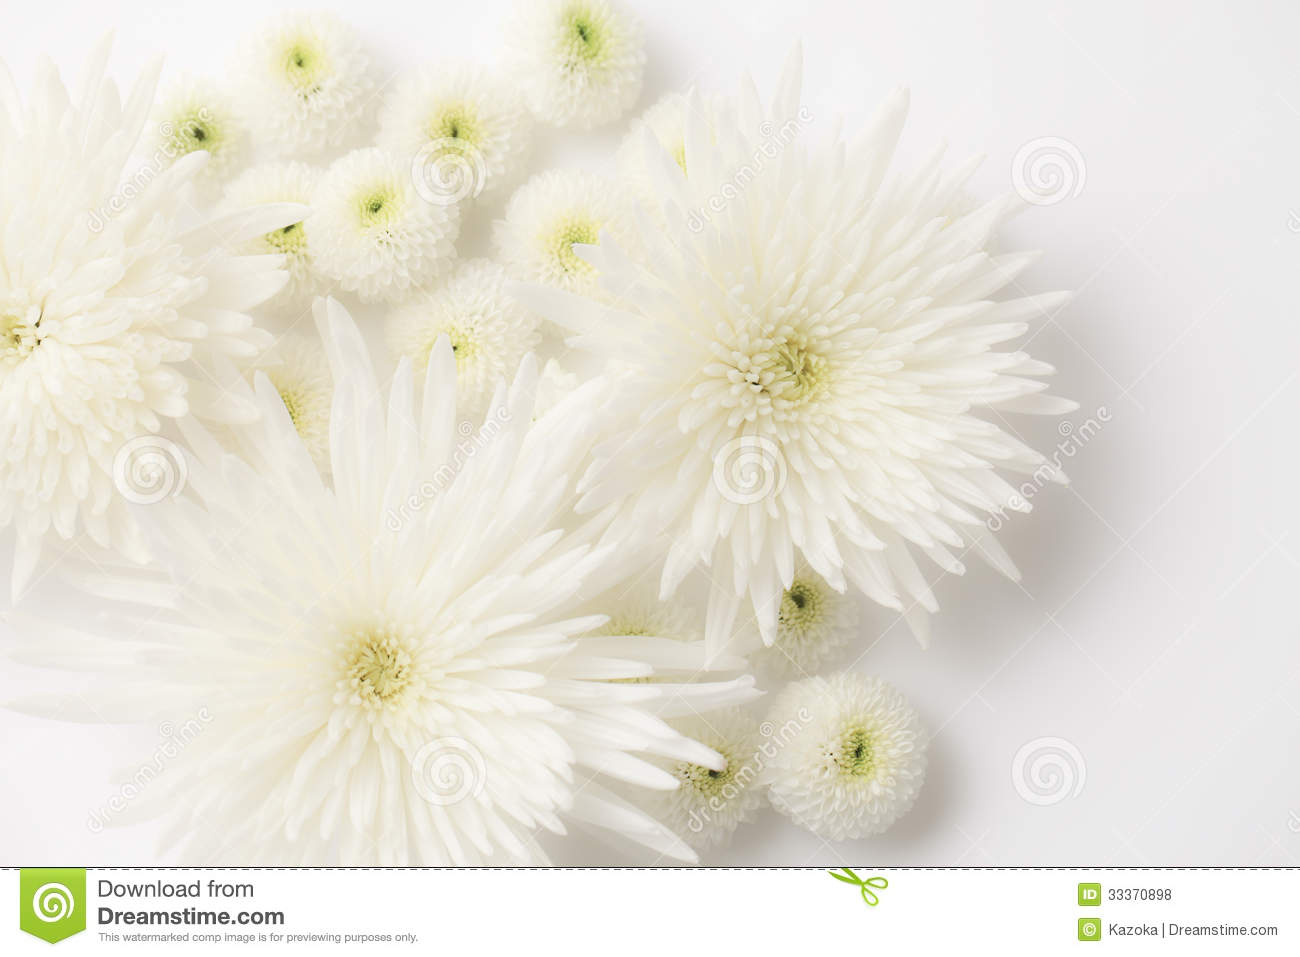 Funeral flowers stock photo. Image of decoration, flora ...